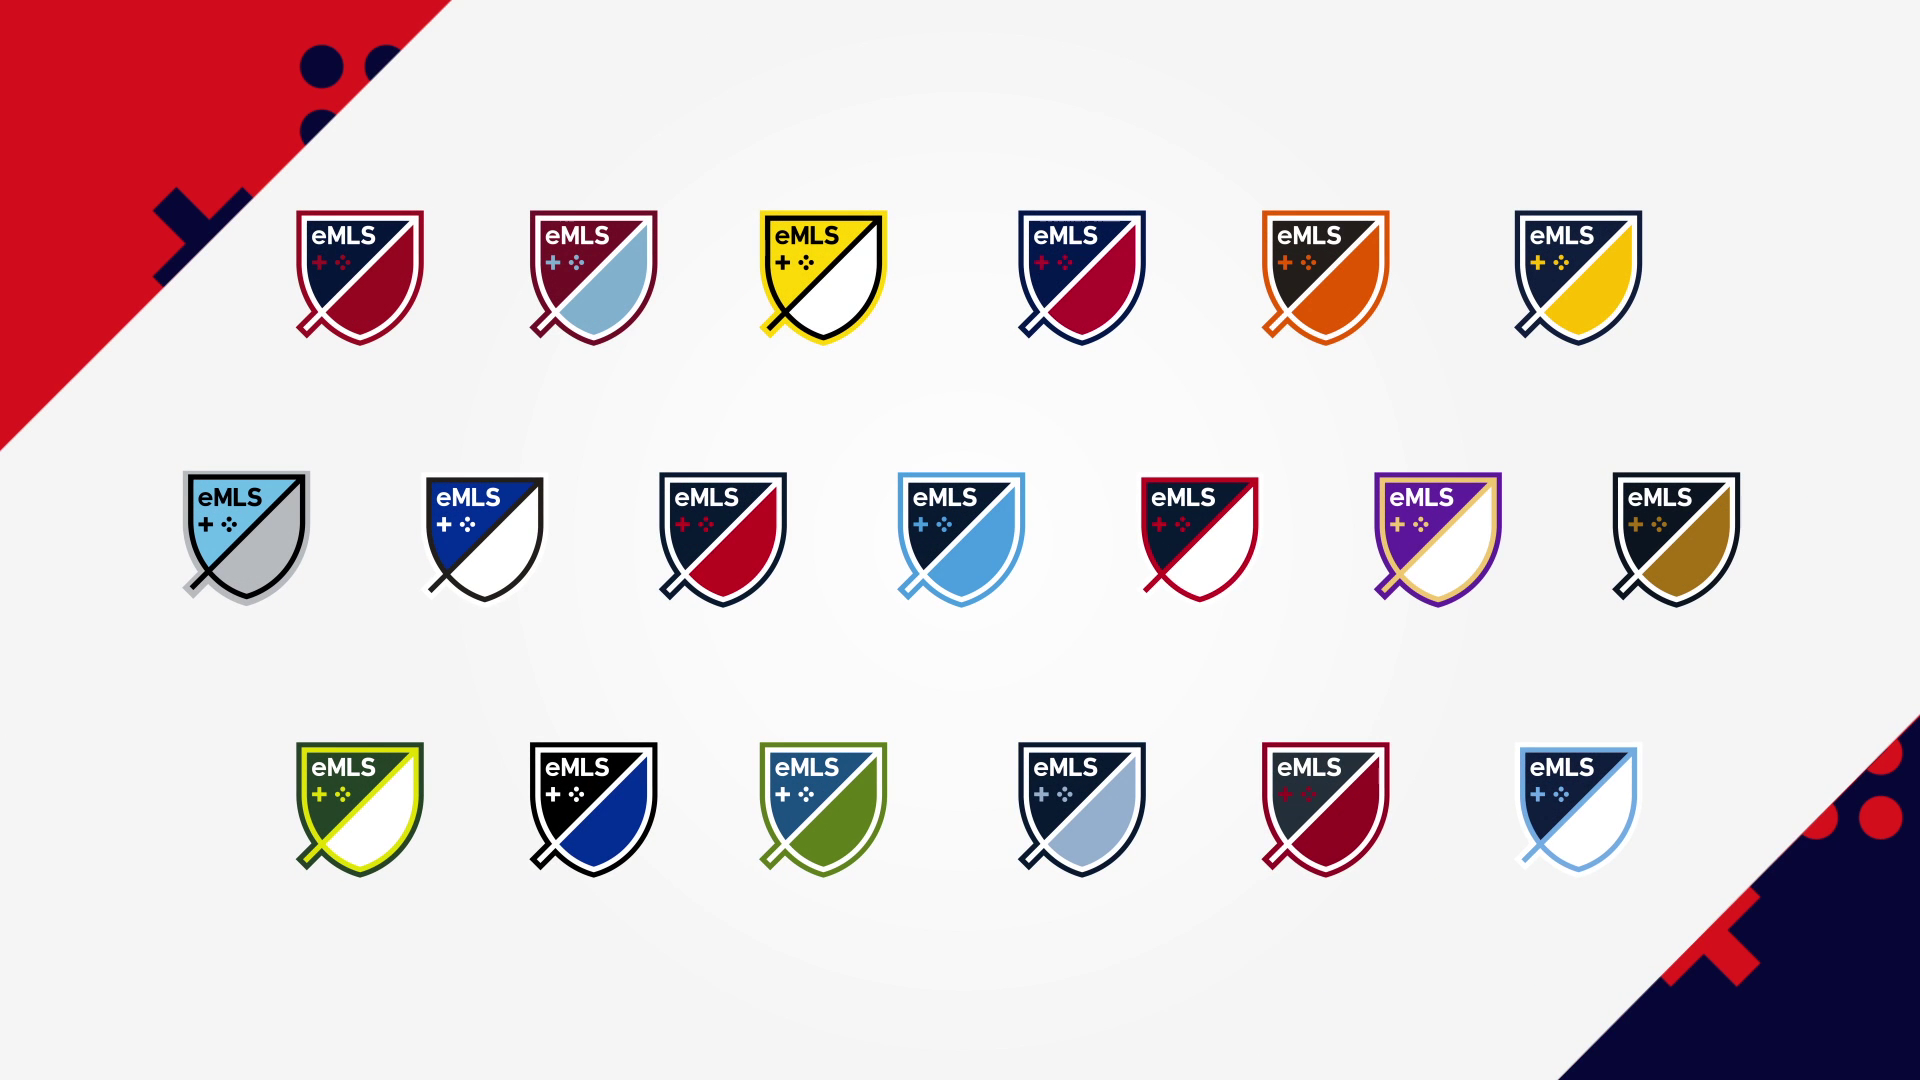 EMLS: Competitive gaming comes to MLS